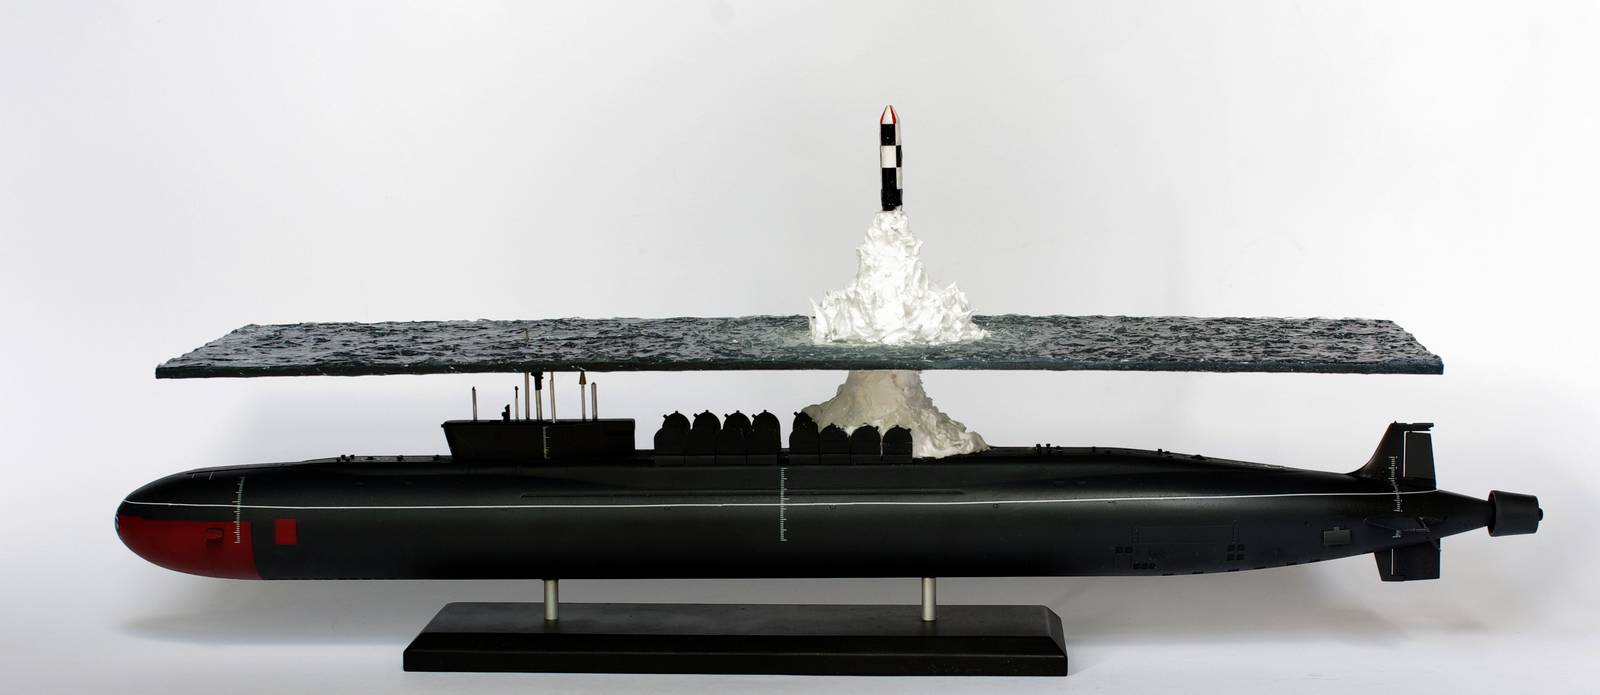 Great scale model of Russian submarine Yury Dolgorukiy (K-535) - 23